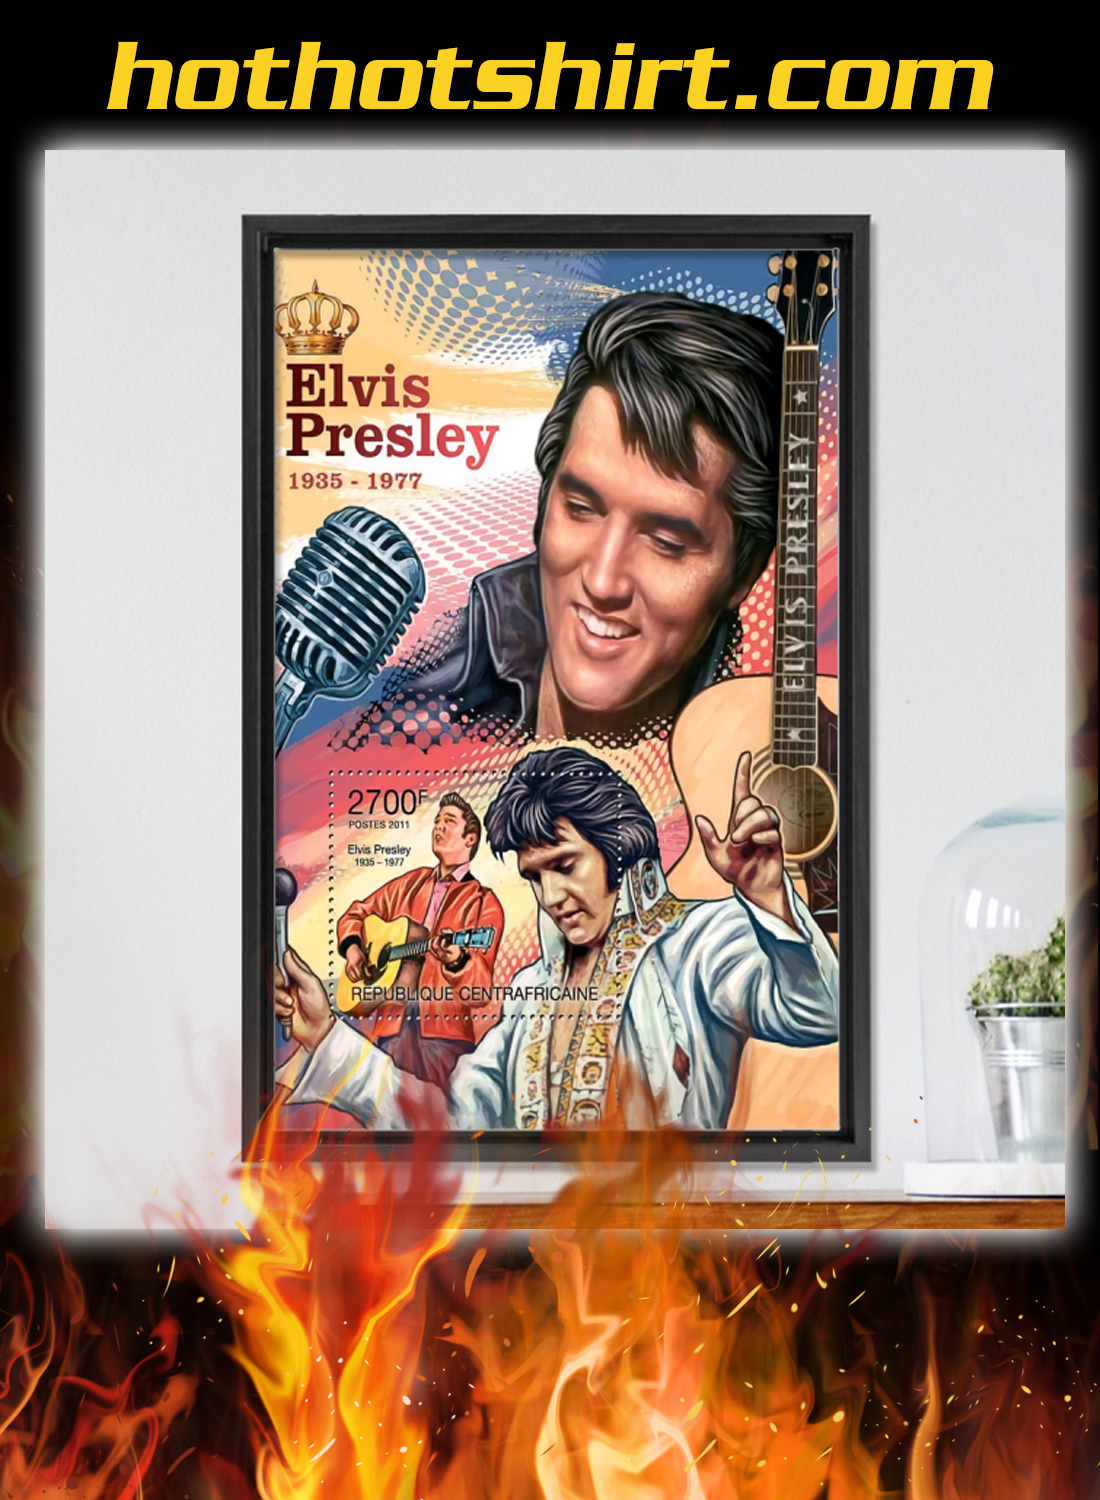 Elvis presley 1935 1977 poster and canvas prints 3